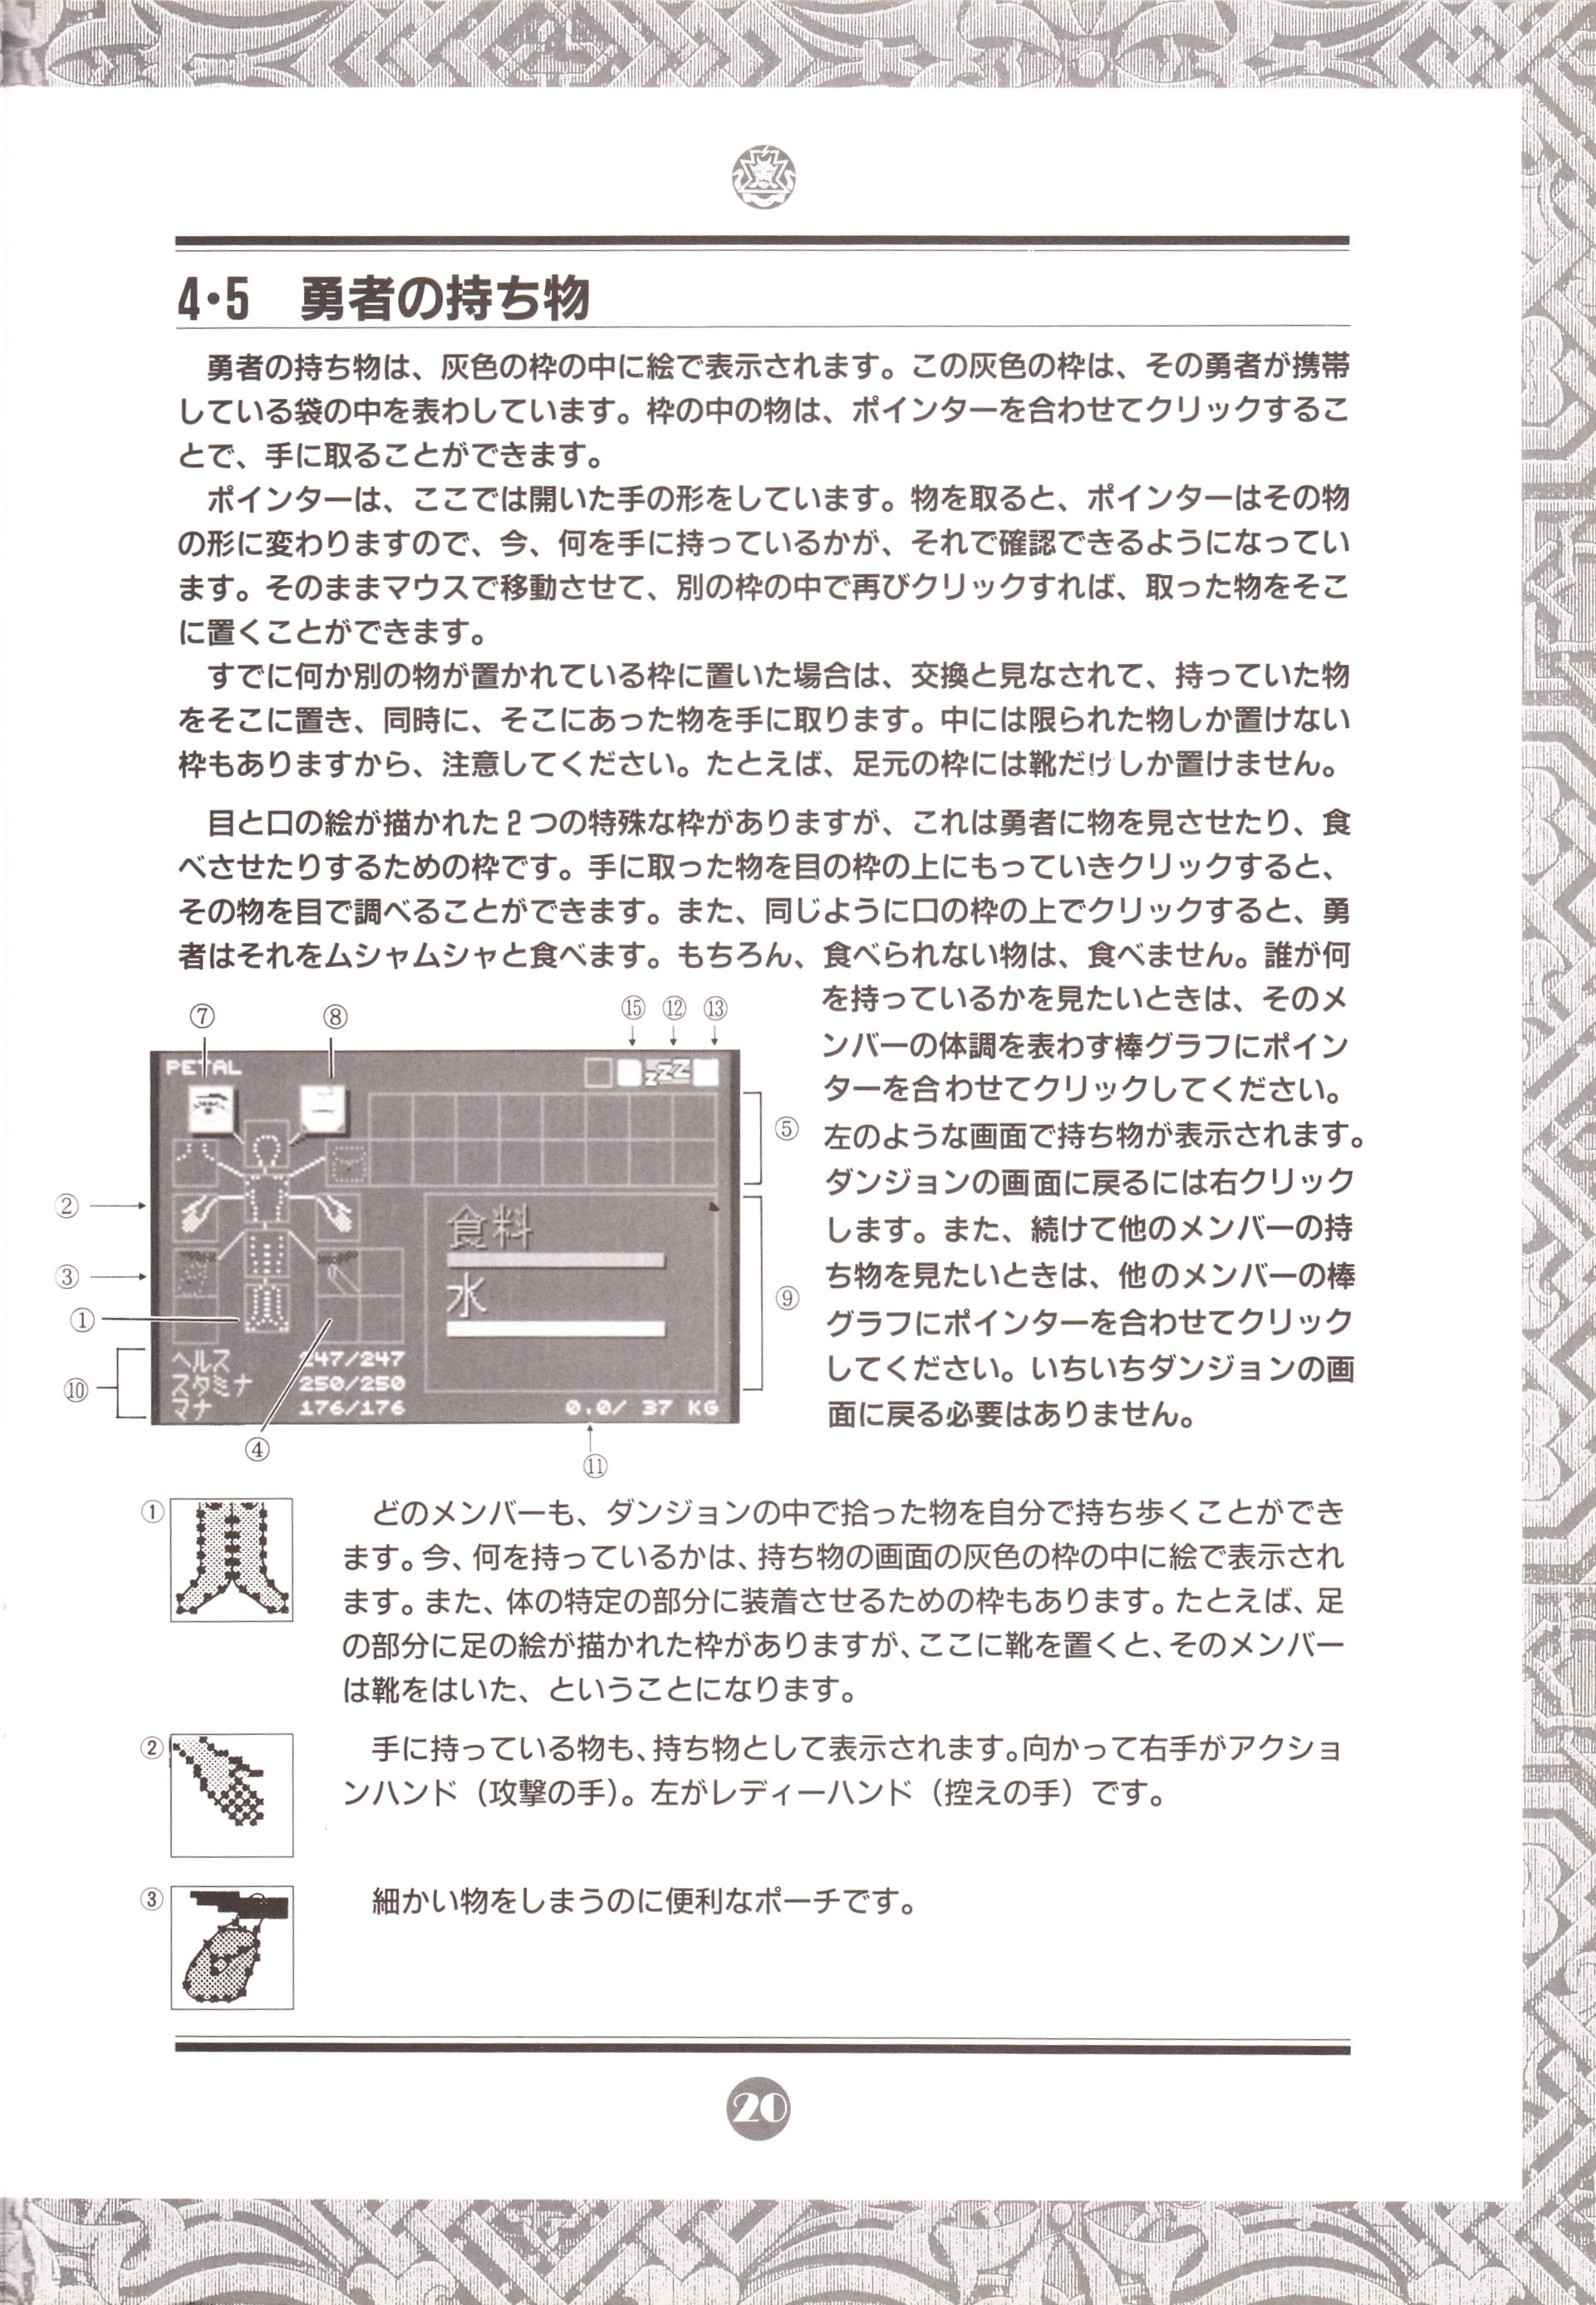 Game - Chaos Strikes Back - JP - PC-9801 - 3-5-inch - An Operation Manual - Page 023 - Scan